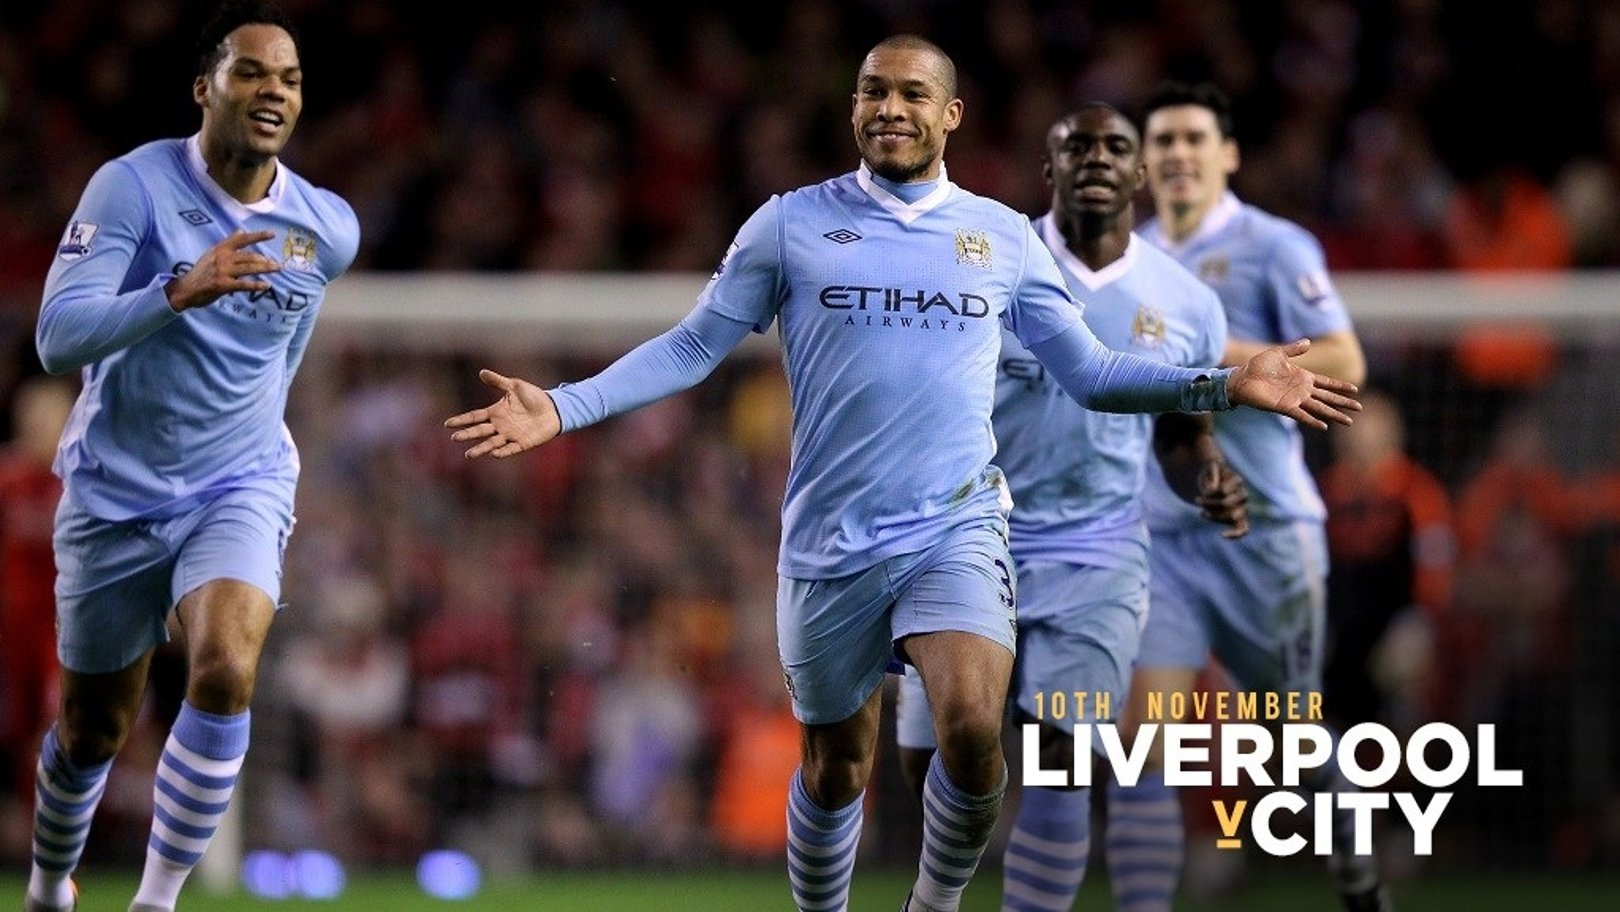 Liverpool v City: Five great Anfield moments